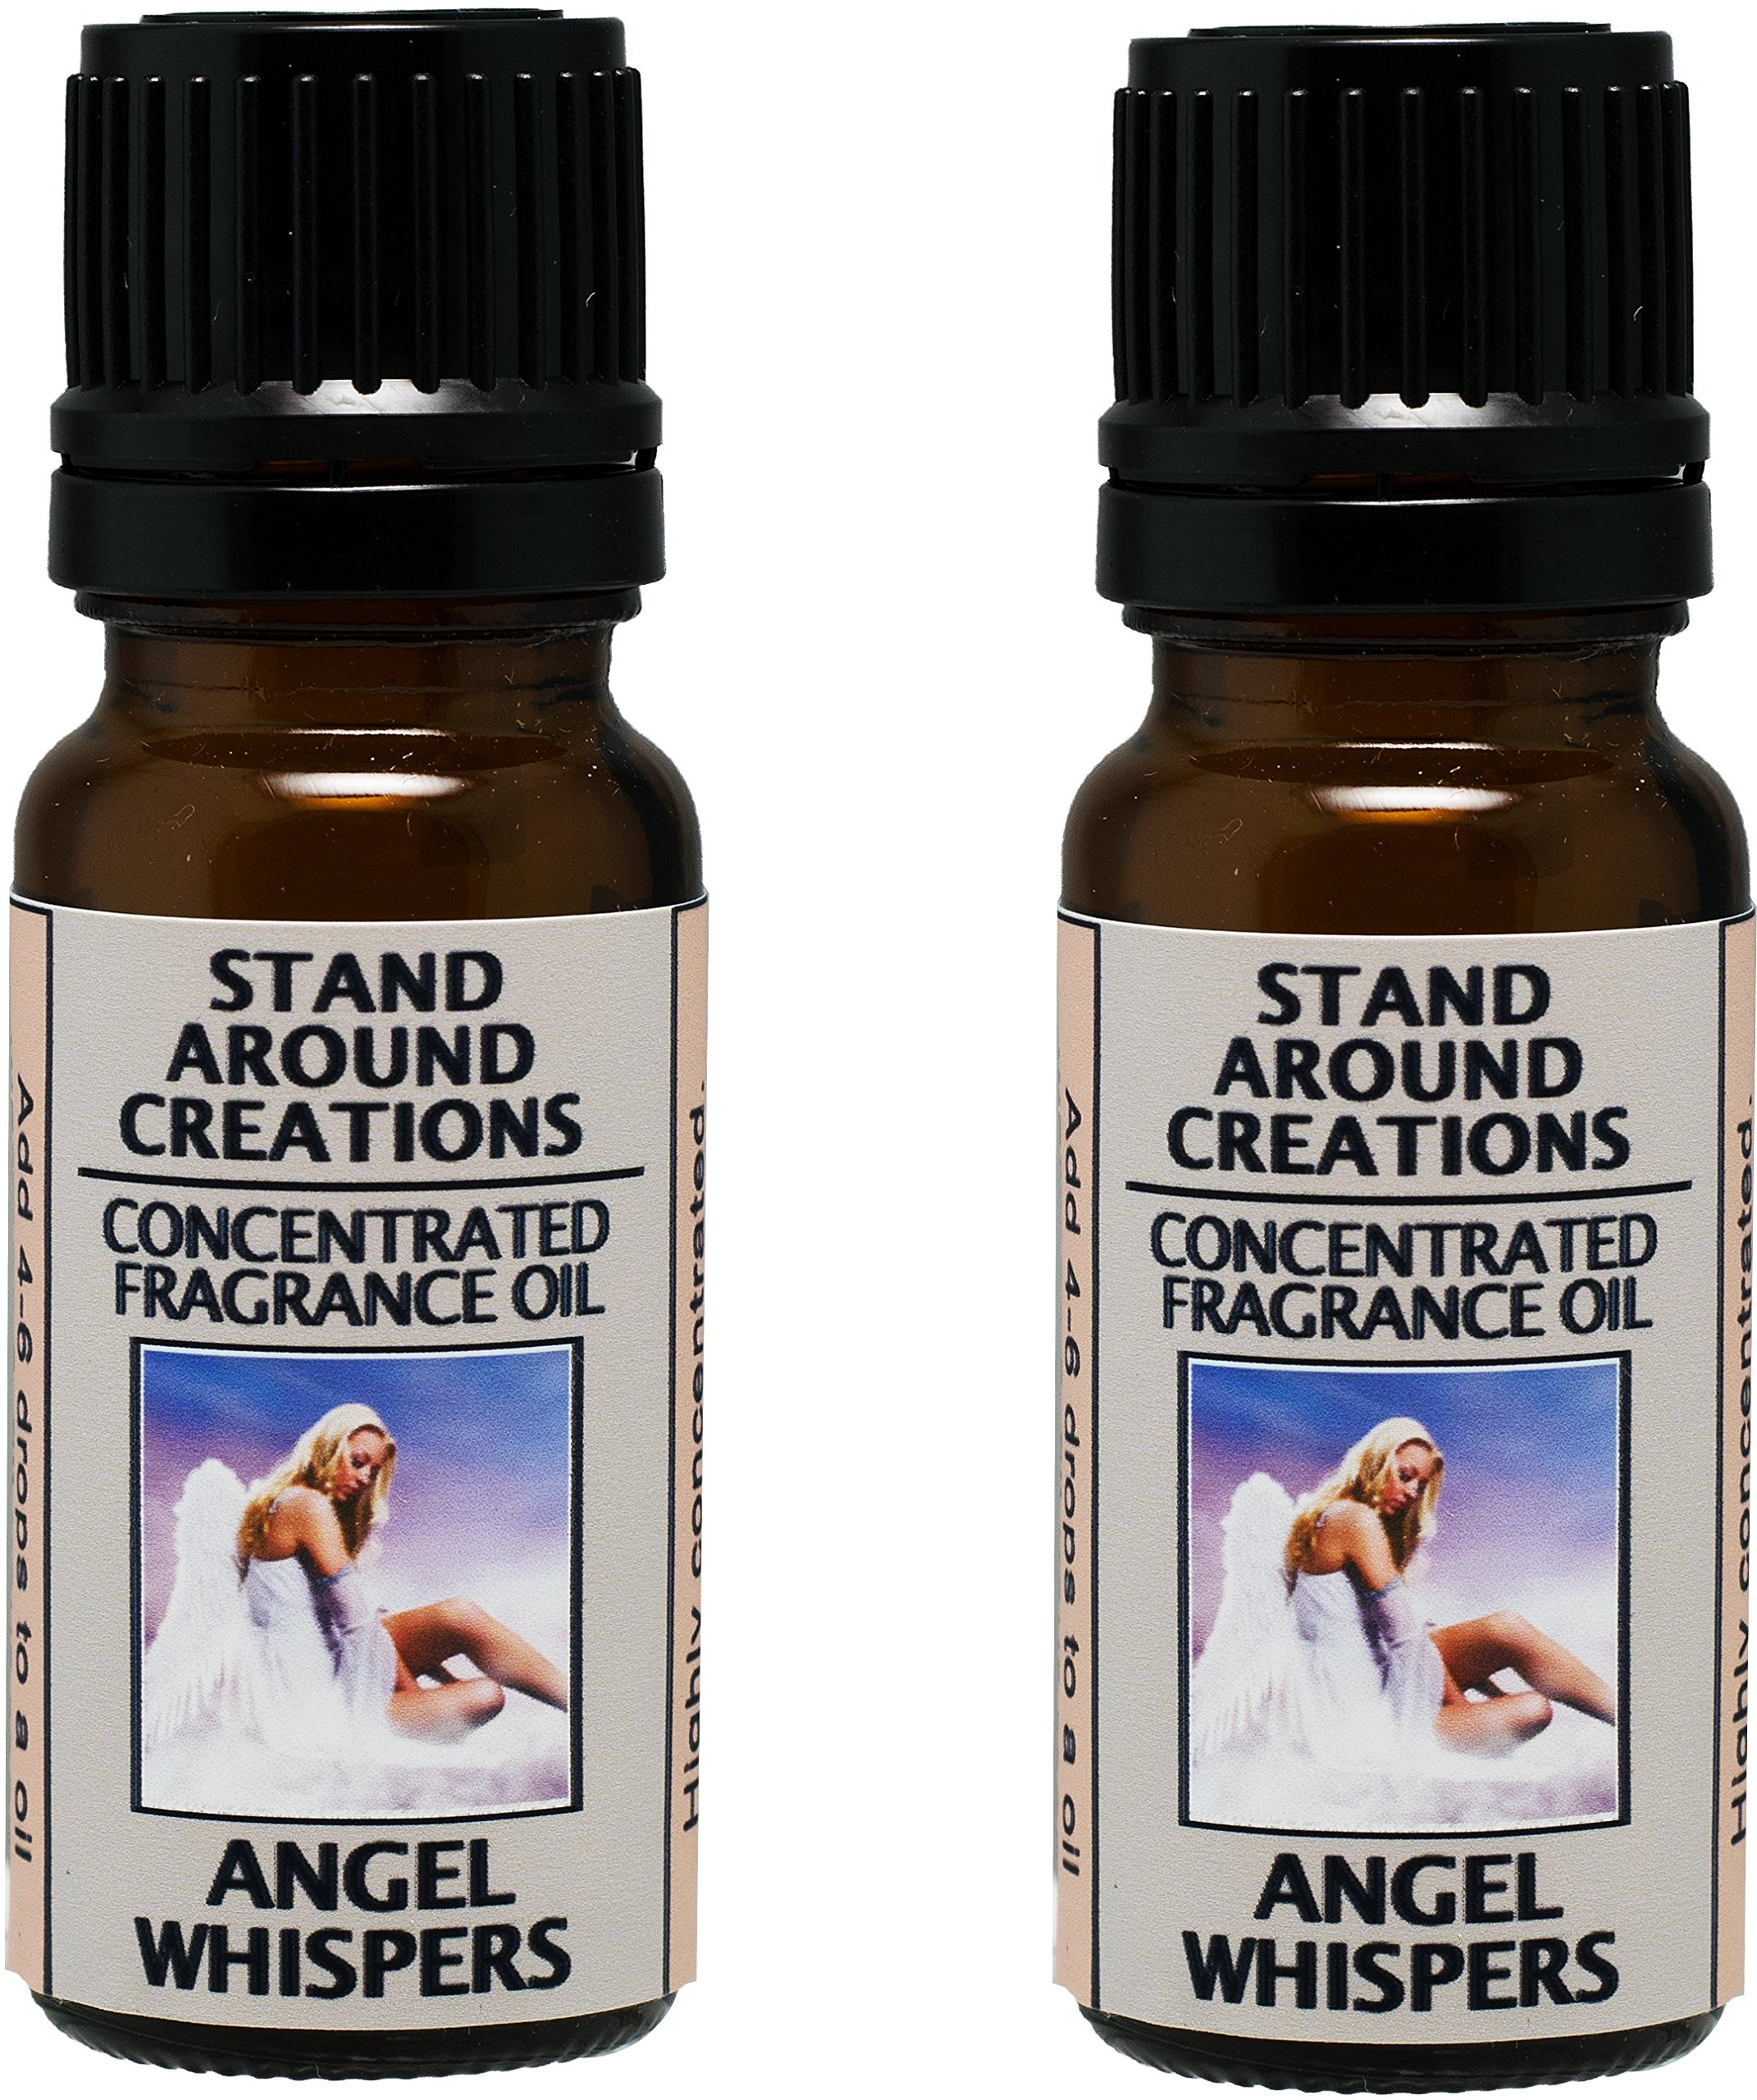 Set of 2 - Concentrated Fragrance Oil - Angel Whispers - Green leafy ferns and sweet florals w/jasmine and white floral lily. Made w/Essential oils (.33 fl.oz.)